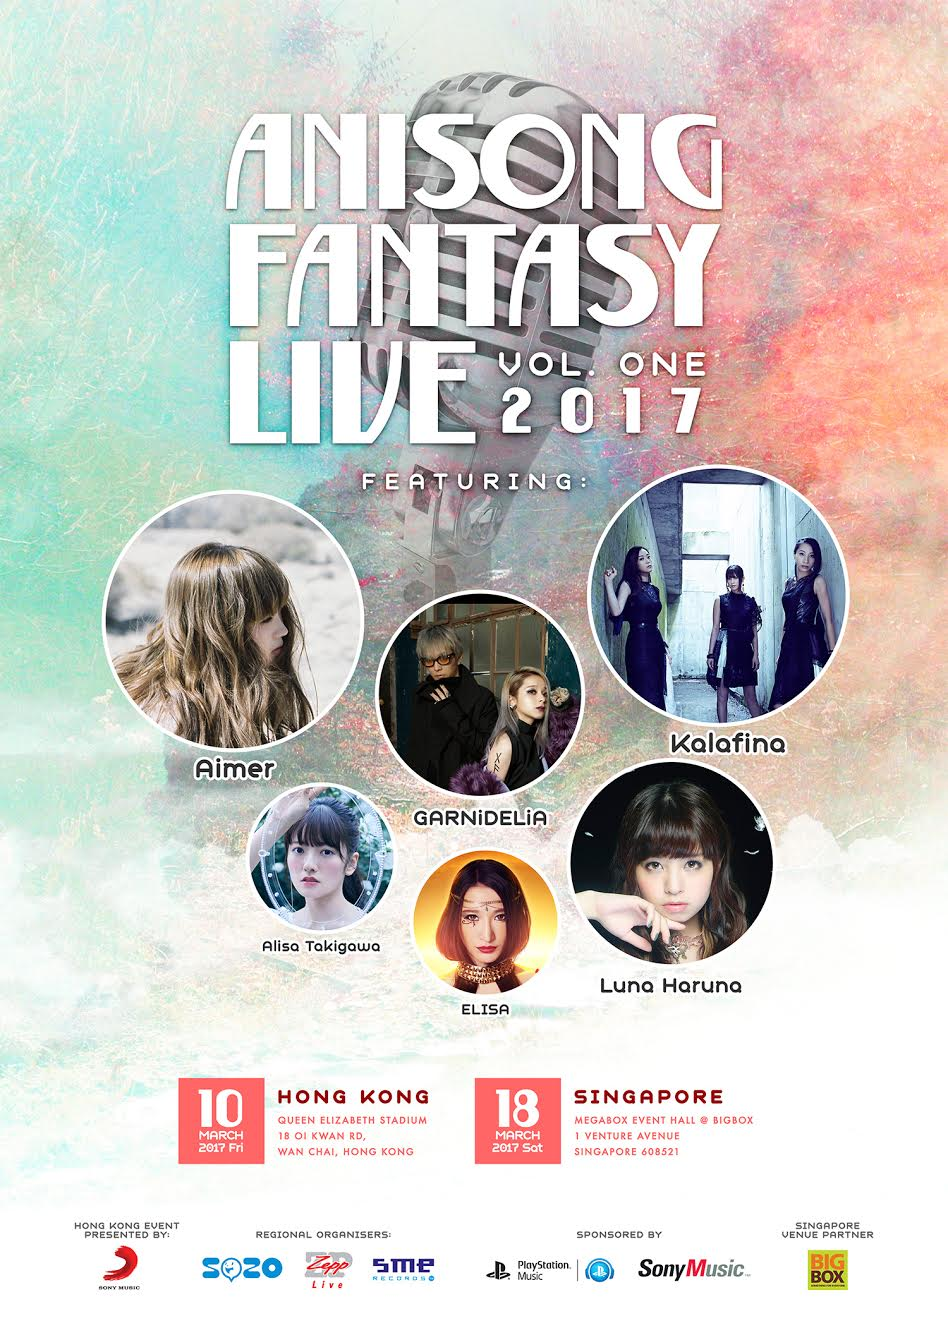 Line Up for Anisong Fantasy Live vol. 1 2017 Announced